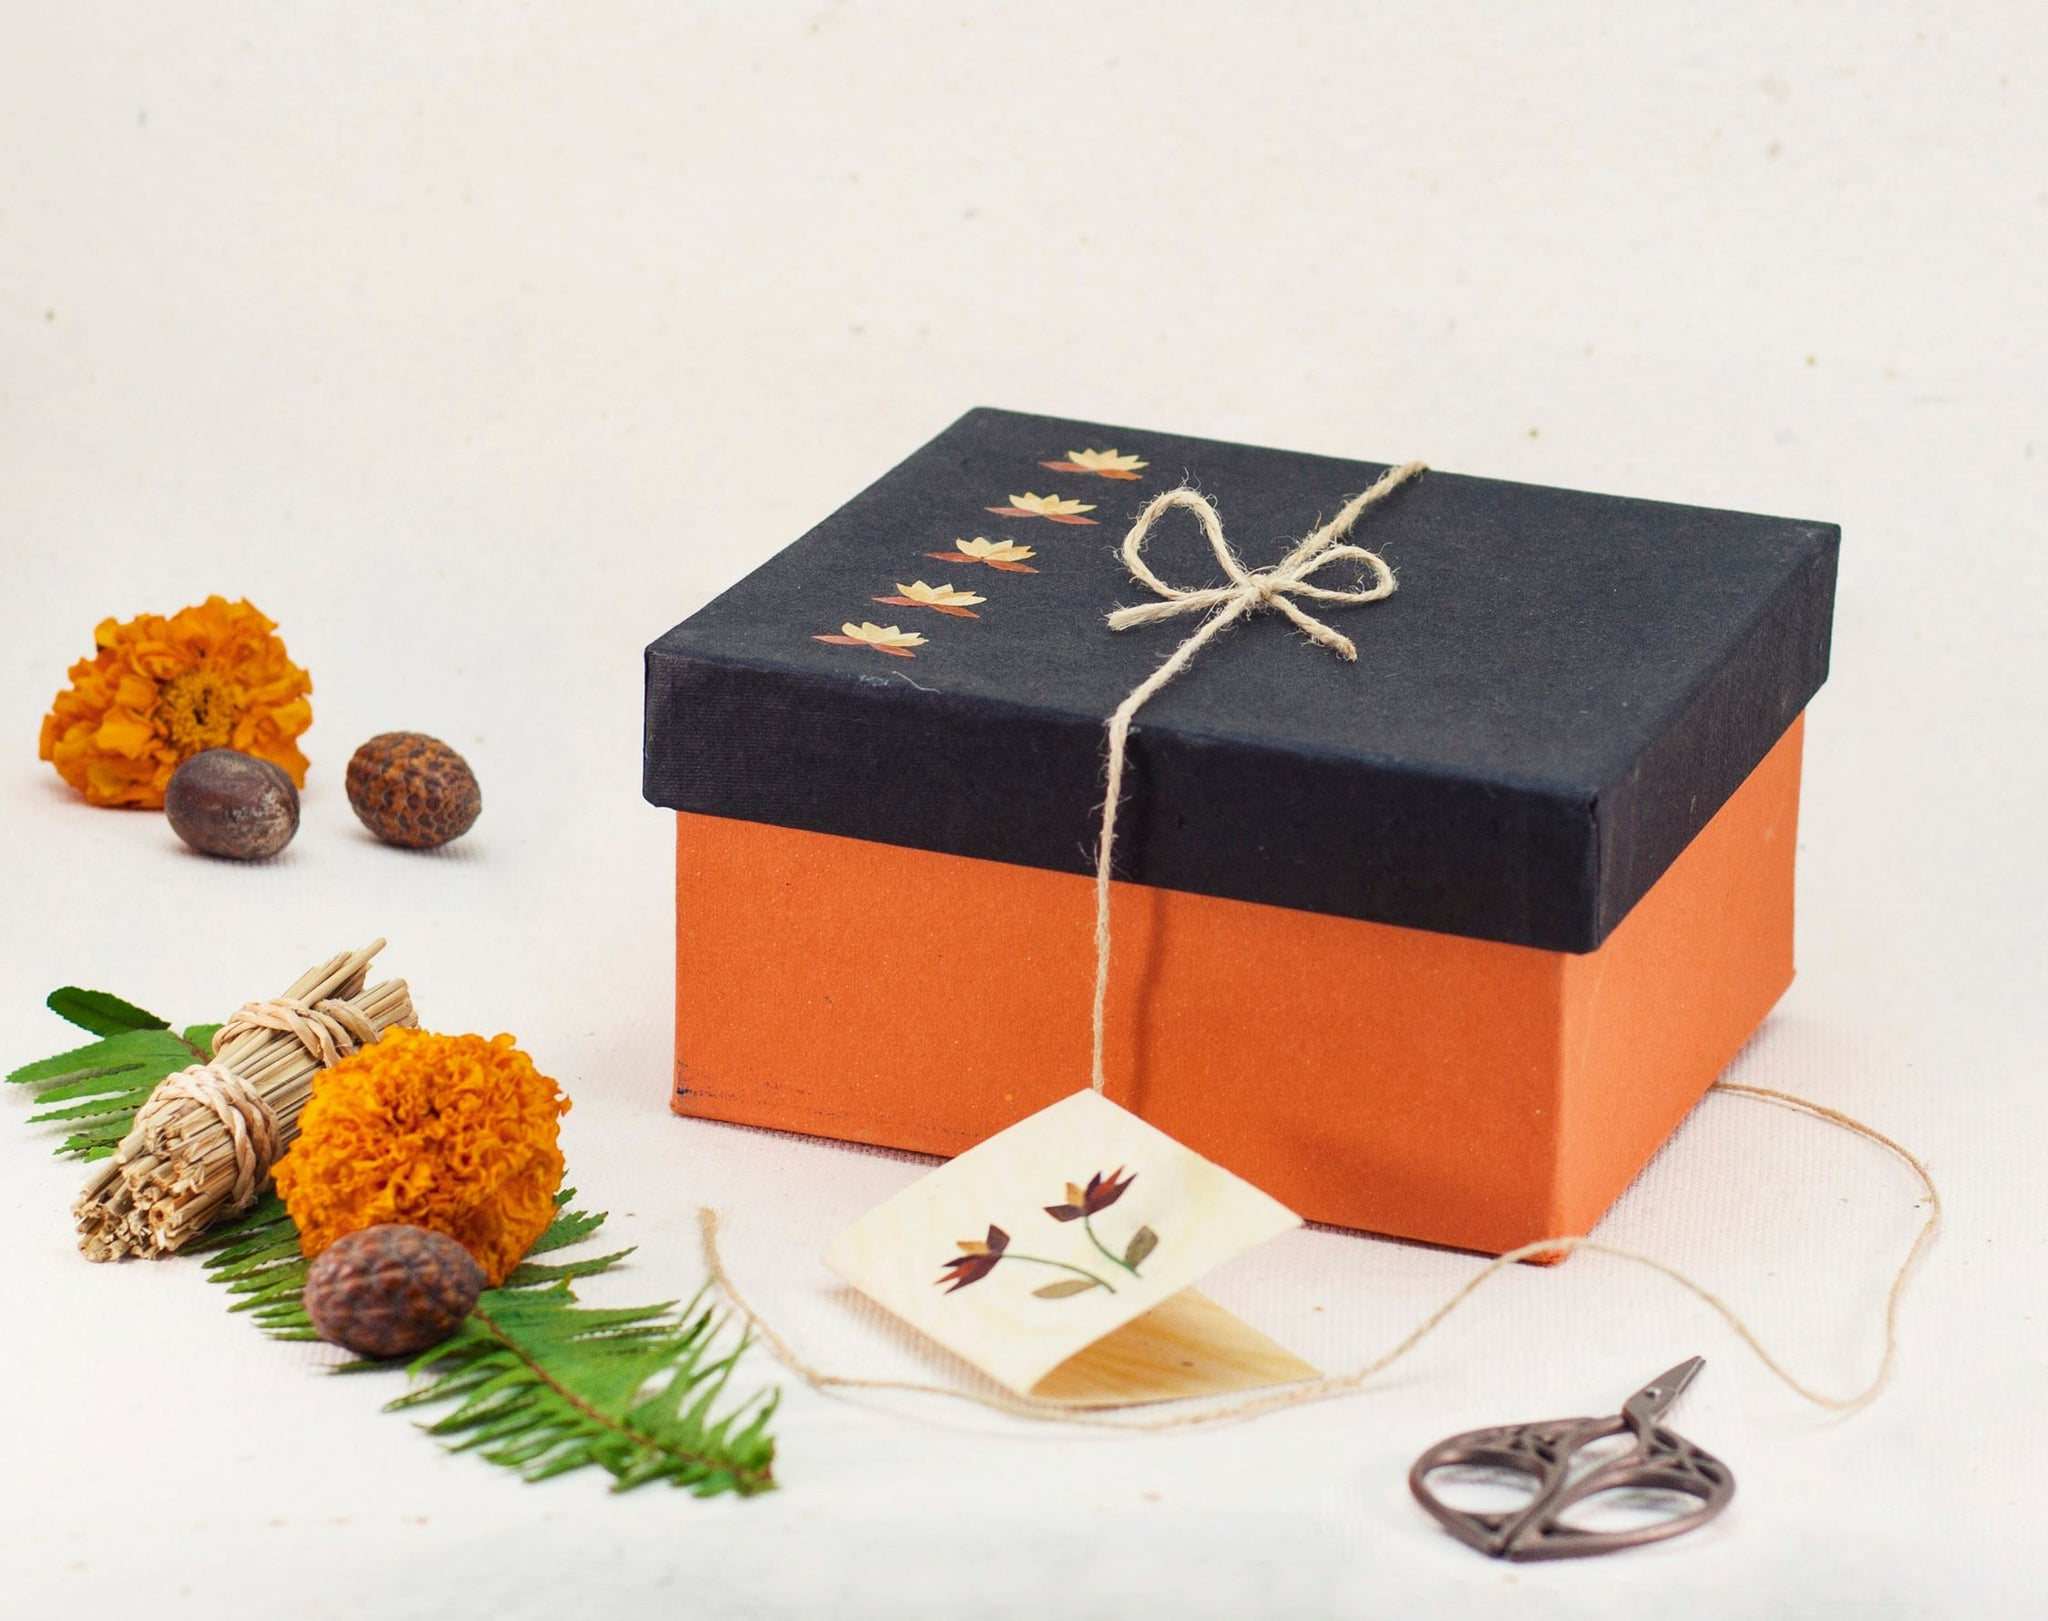 Black/ Orange Small Floral Giftbox Handmade by Women Artisans